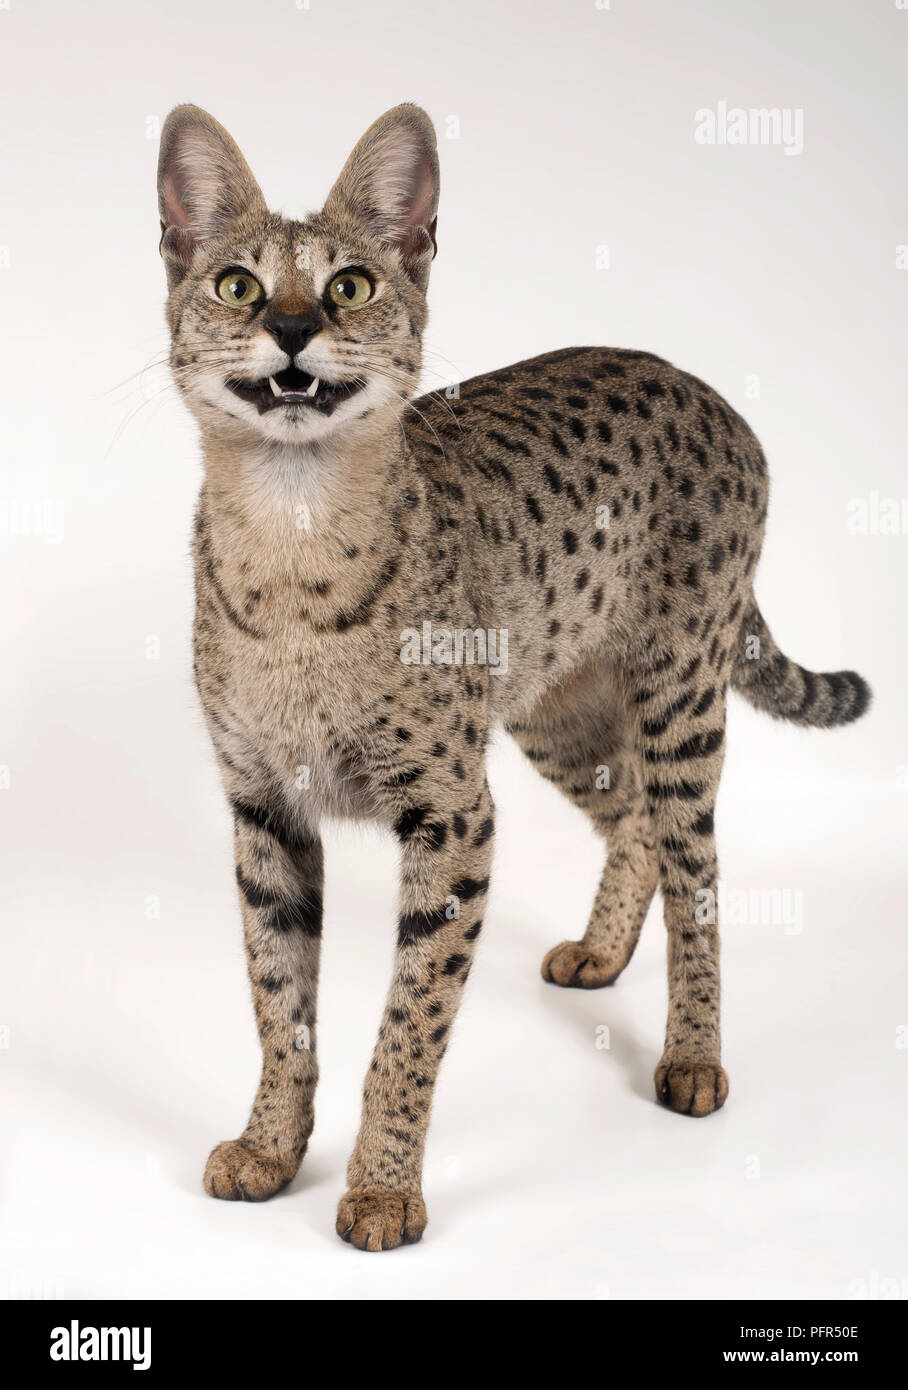 Savannah F1 Shorthair Cat Stock Photo Alamy